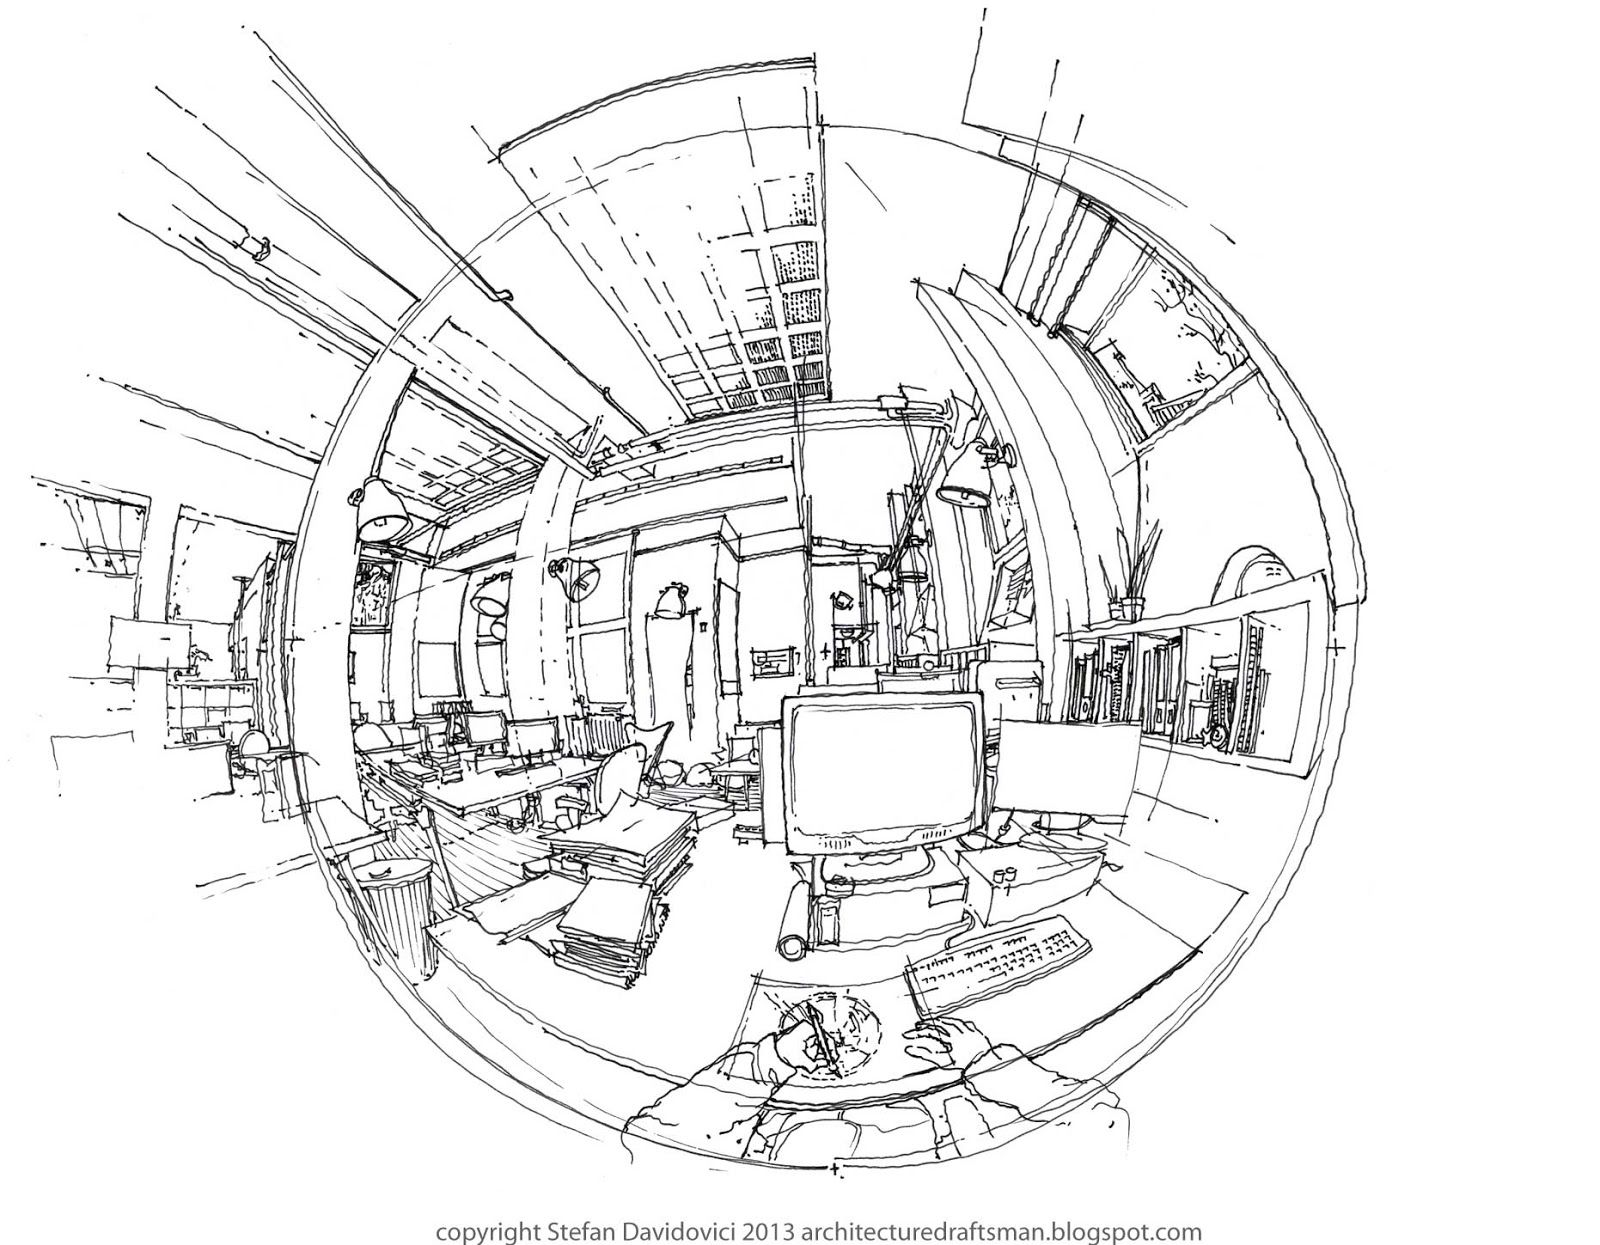 From My Desk Milan 2013 By Stefan Davidovici Architect In Milan Cool Sketches Interior Sketch Sketches